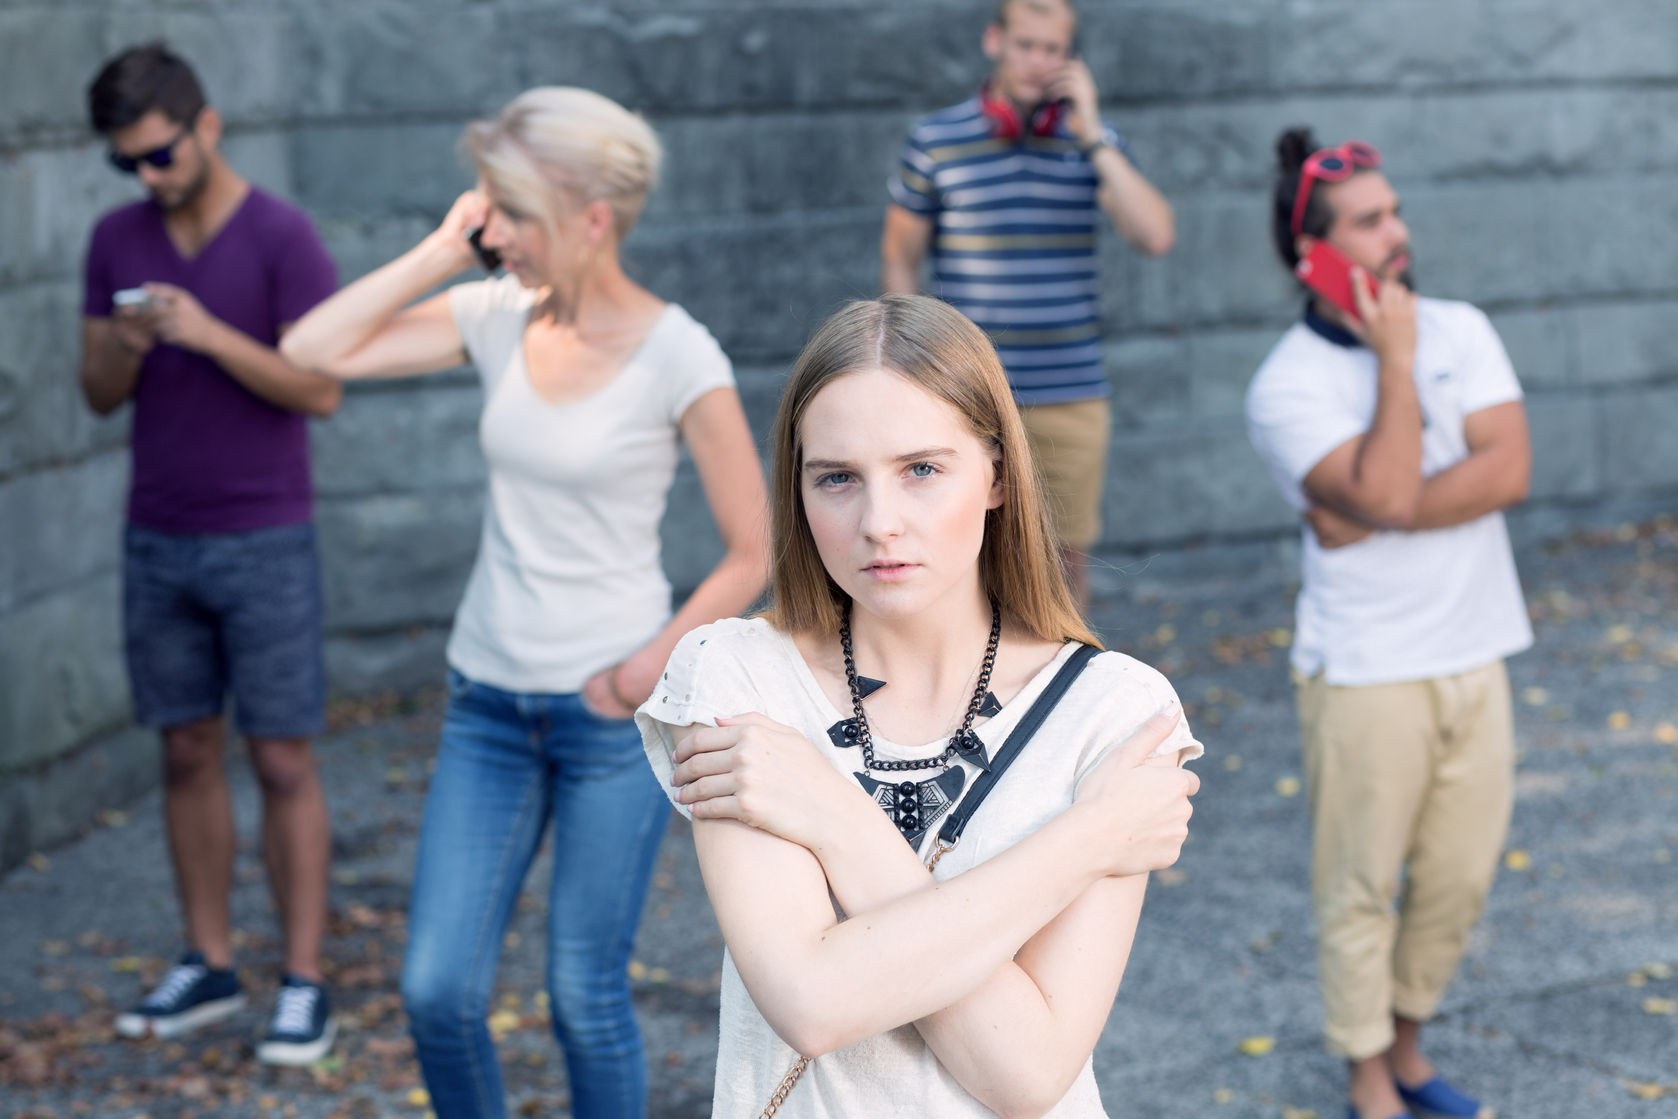 70228729 – pretty young girl lonely among people busy with mobile phones